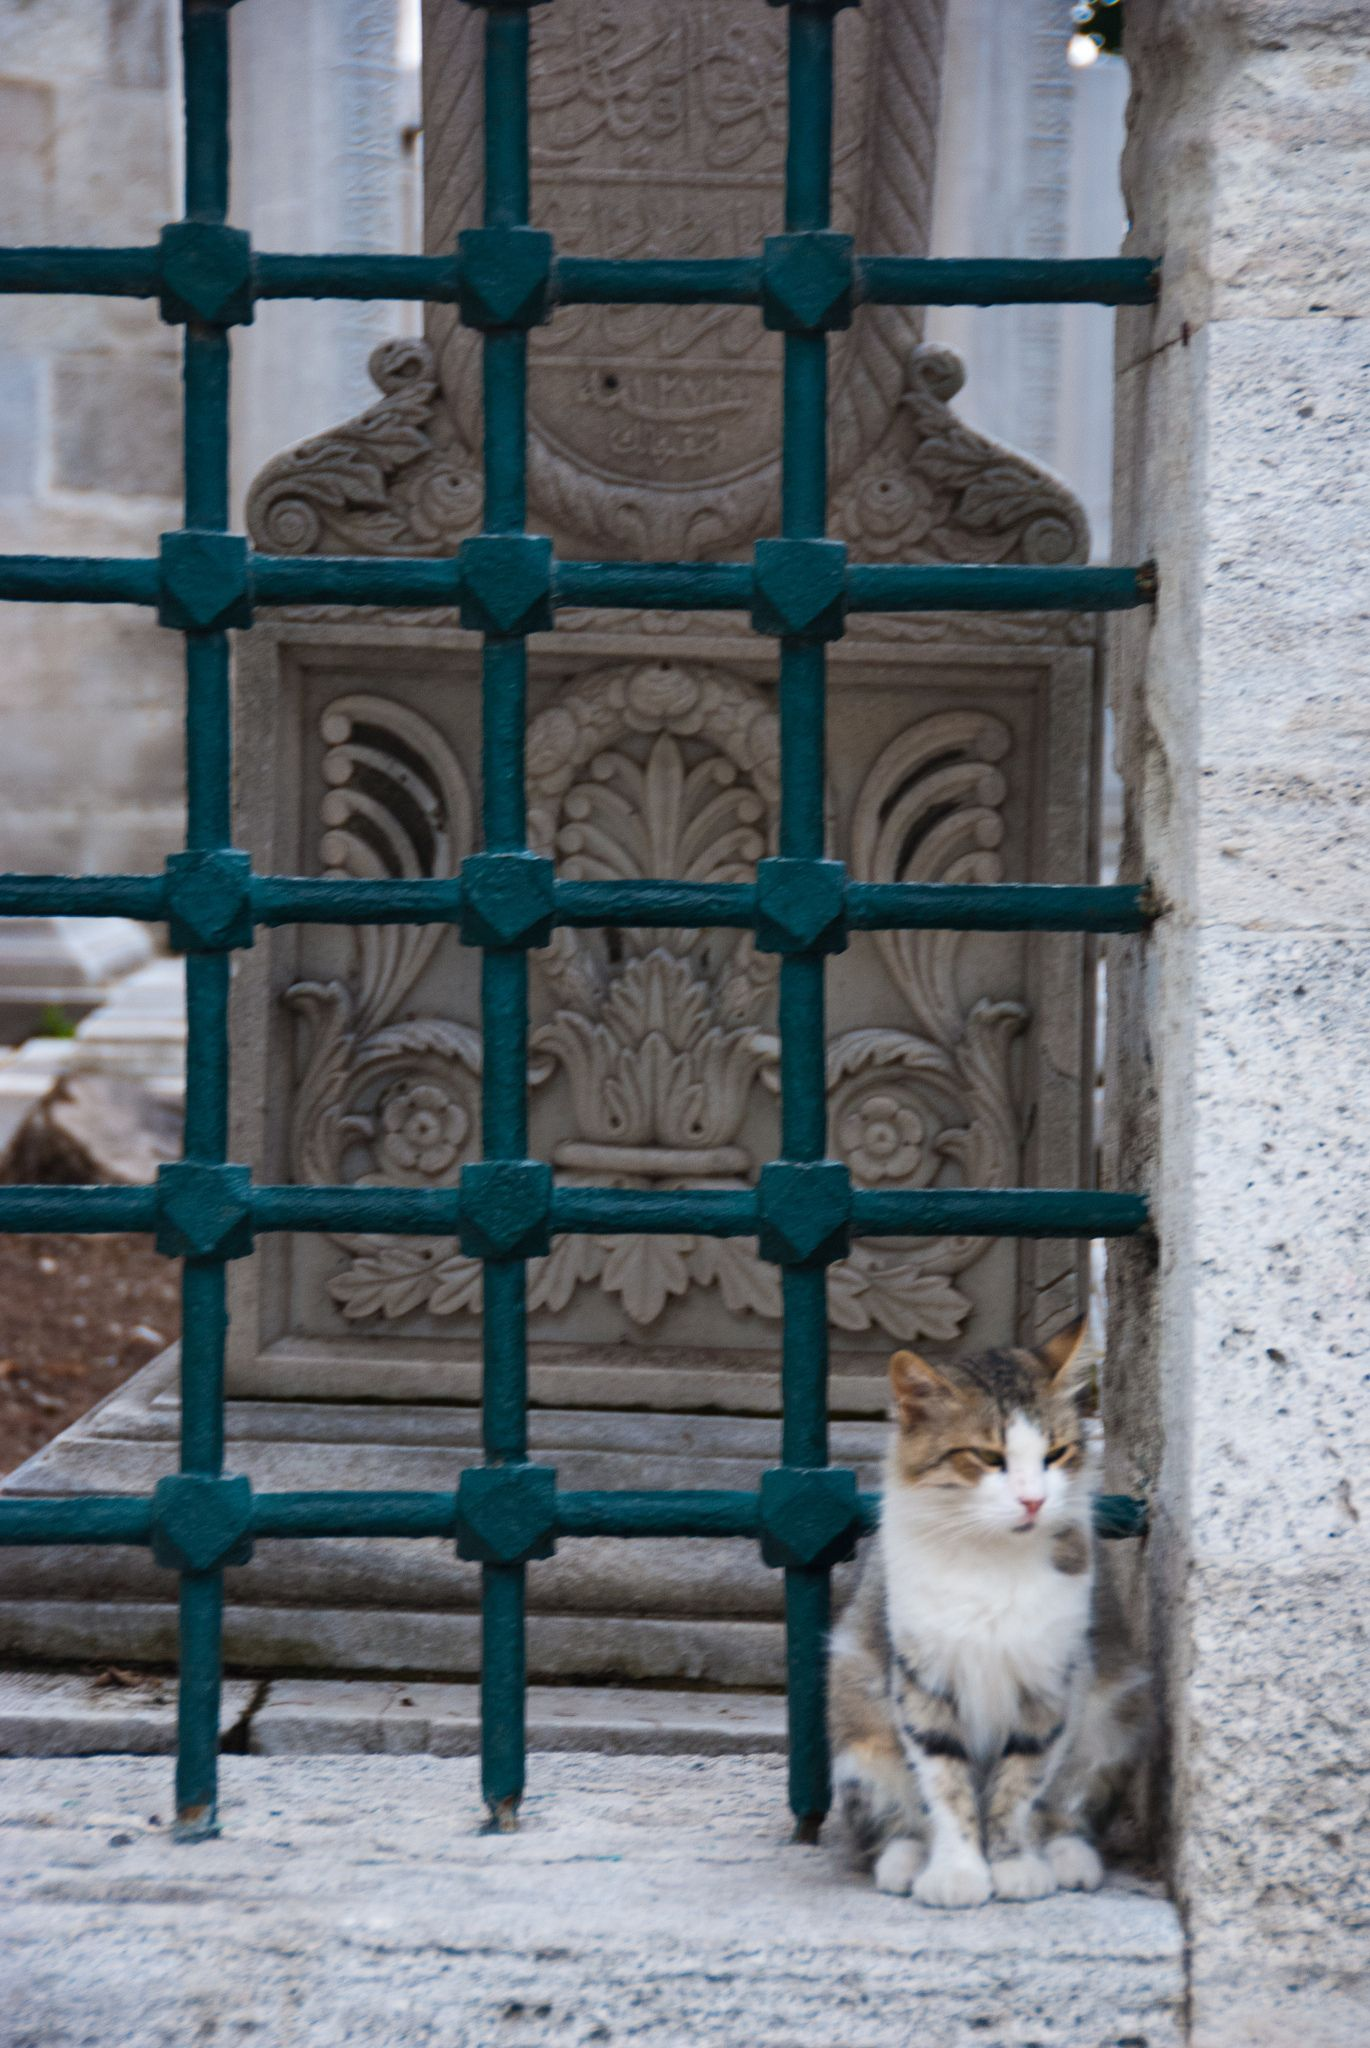 https://flic.kr/p/de8HKs | Ístanbul | Süleymaniye Mosque - Cat at the cemetery